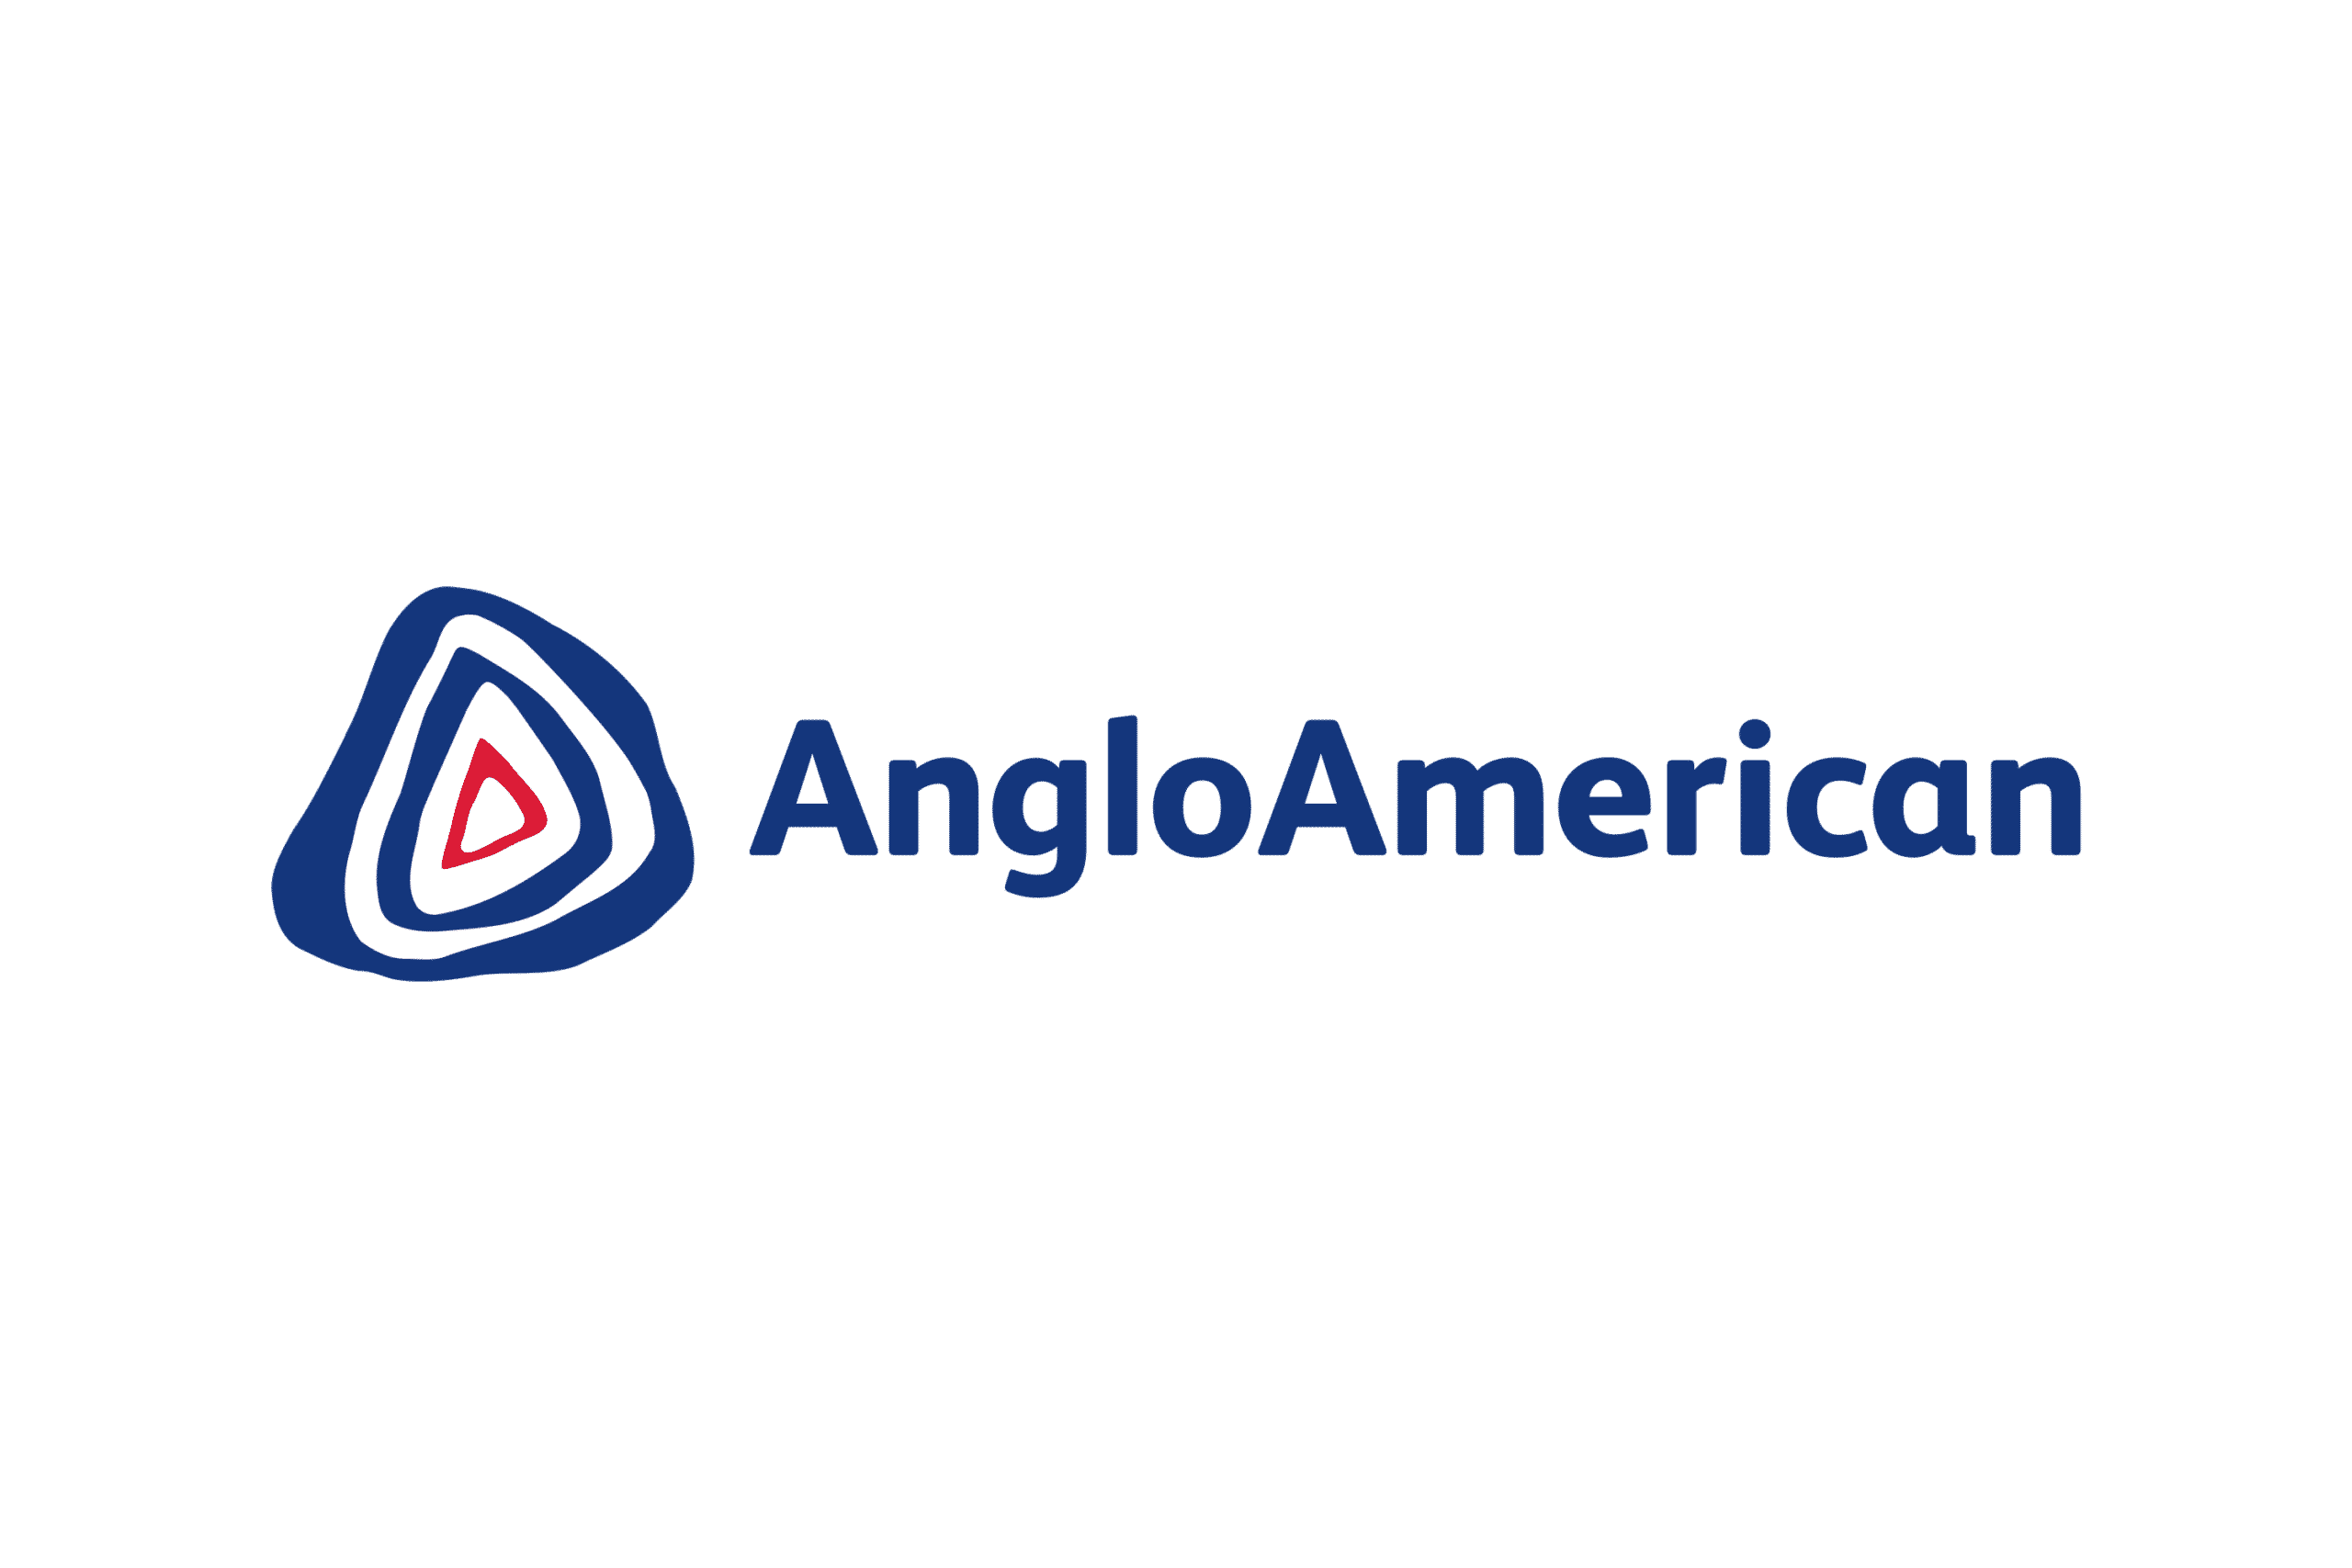 Anglo_American_plc-Logo.wine